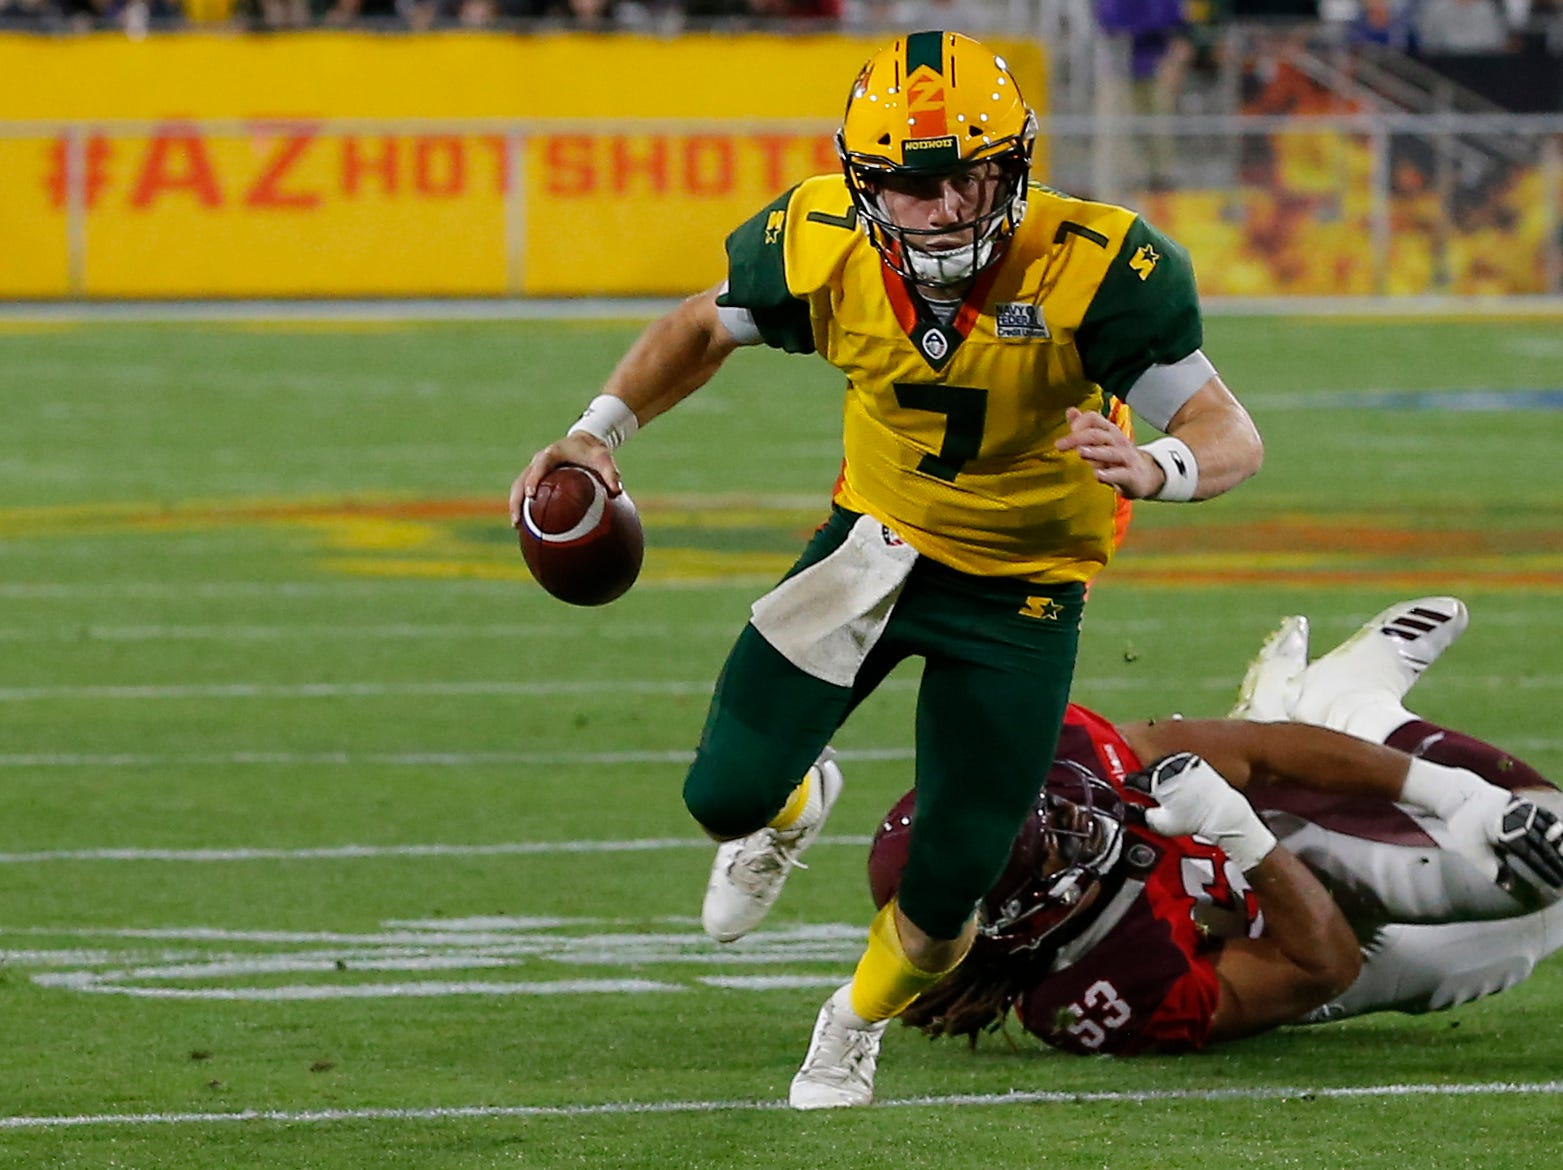 Arizona Hotshots quarterback John Wolford (7) gets pressured by San Antonio Commanders linebacker Austin Larkin (53) in the second half during an AAF football game, Sunday, March 10, 2019, at Sun Devil Stadium in Phoenix. San Antonio defeated Arizona 29-25. (AP Photo/Rick Scuteri)